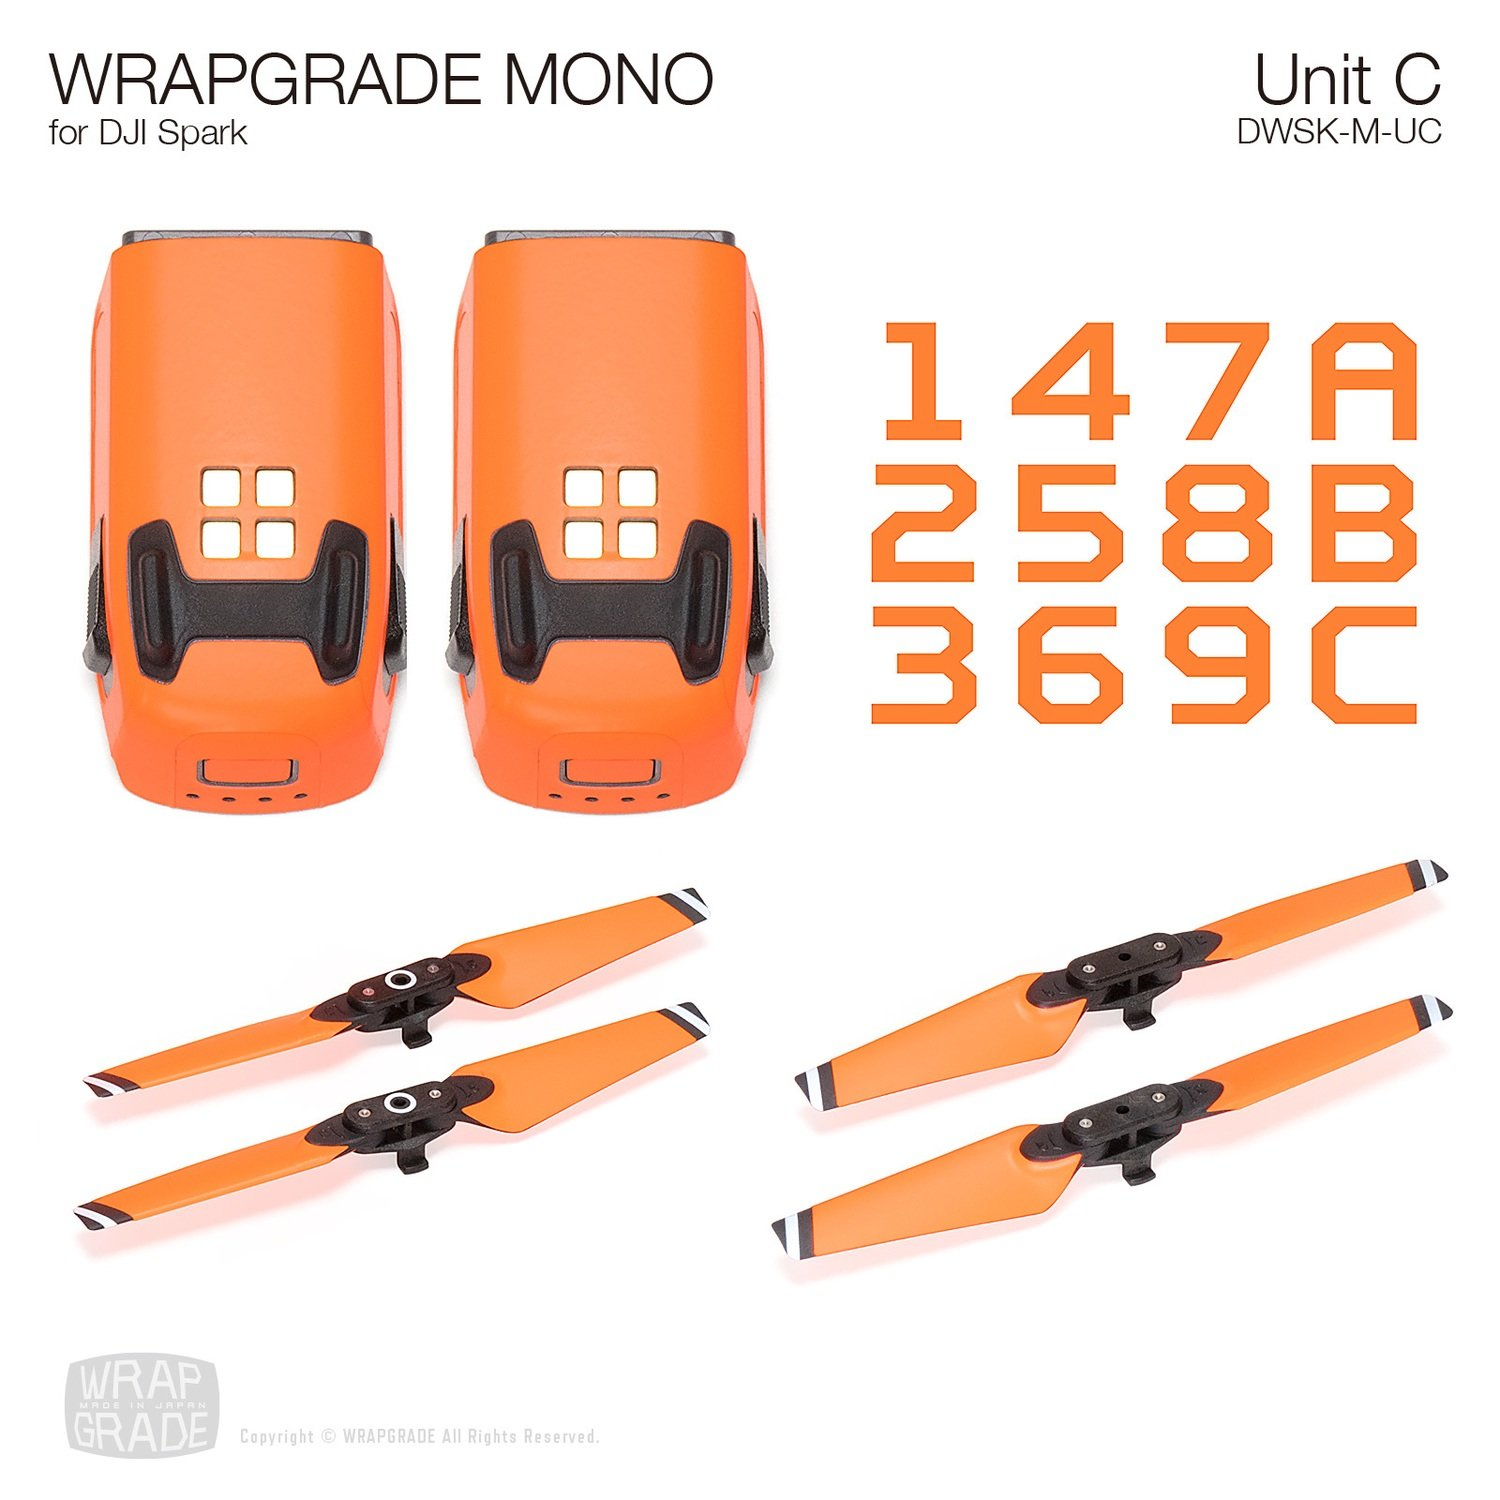 WRAPGRADE MONO for DJI Spark Skin | Unit C: 2 Batteries & 4 Propellers (20 colors)